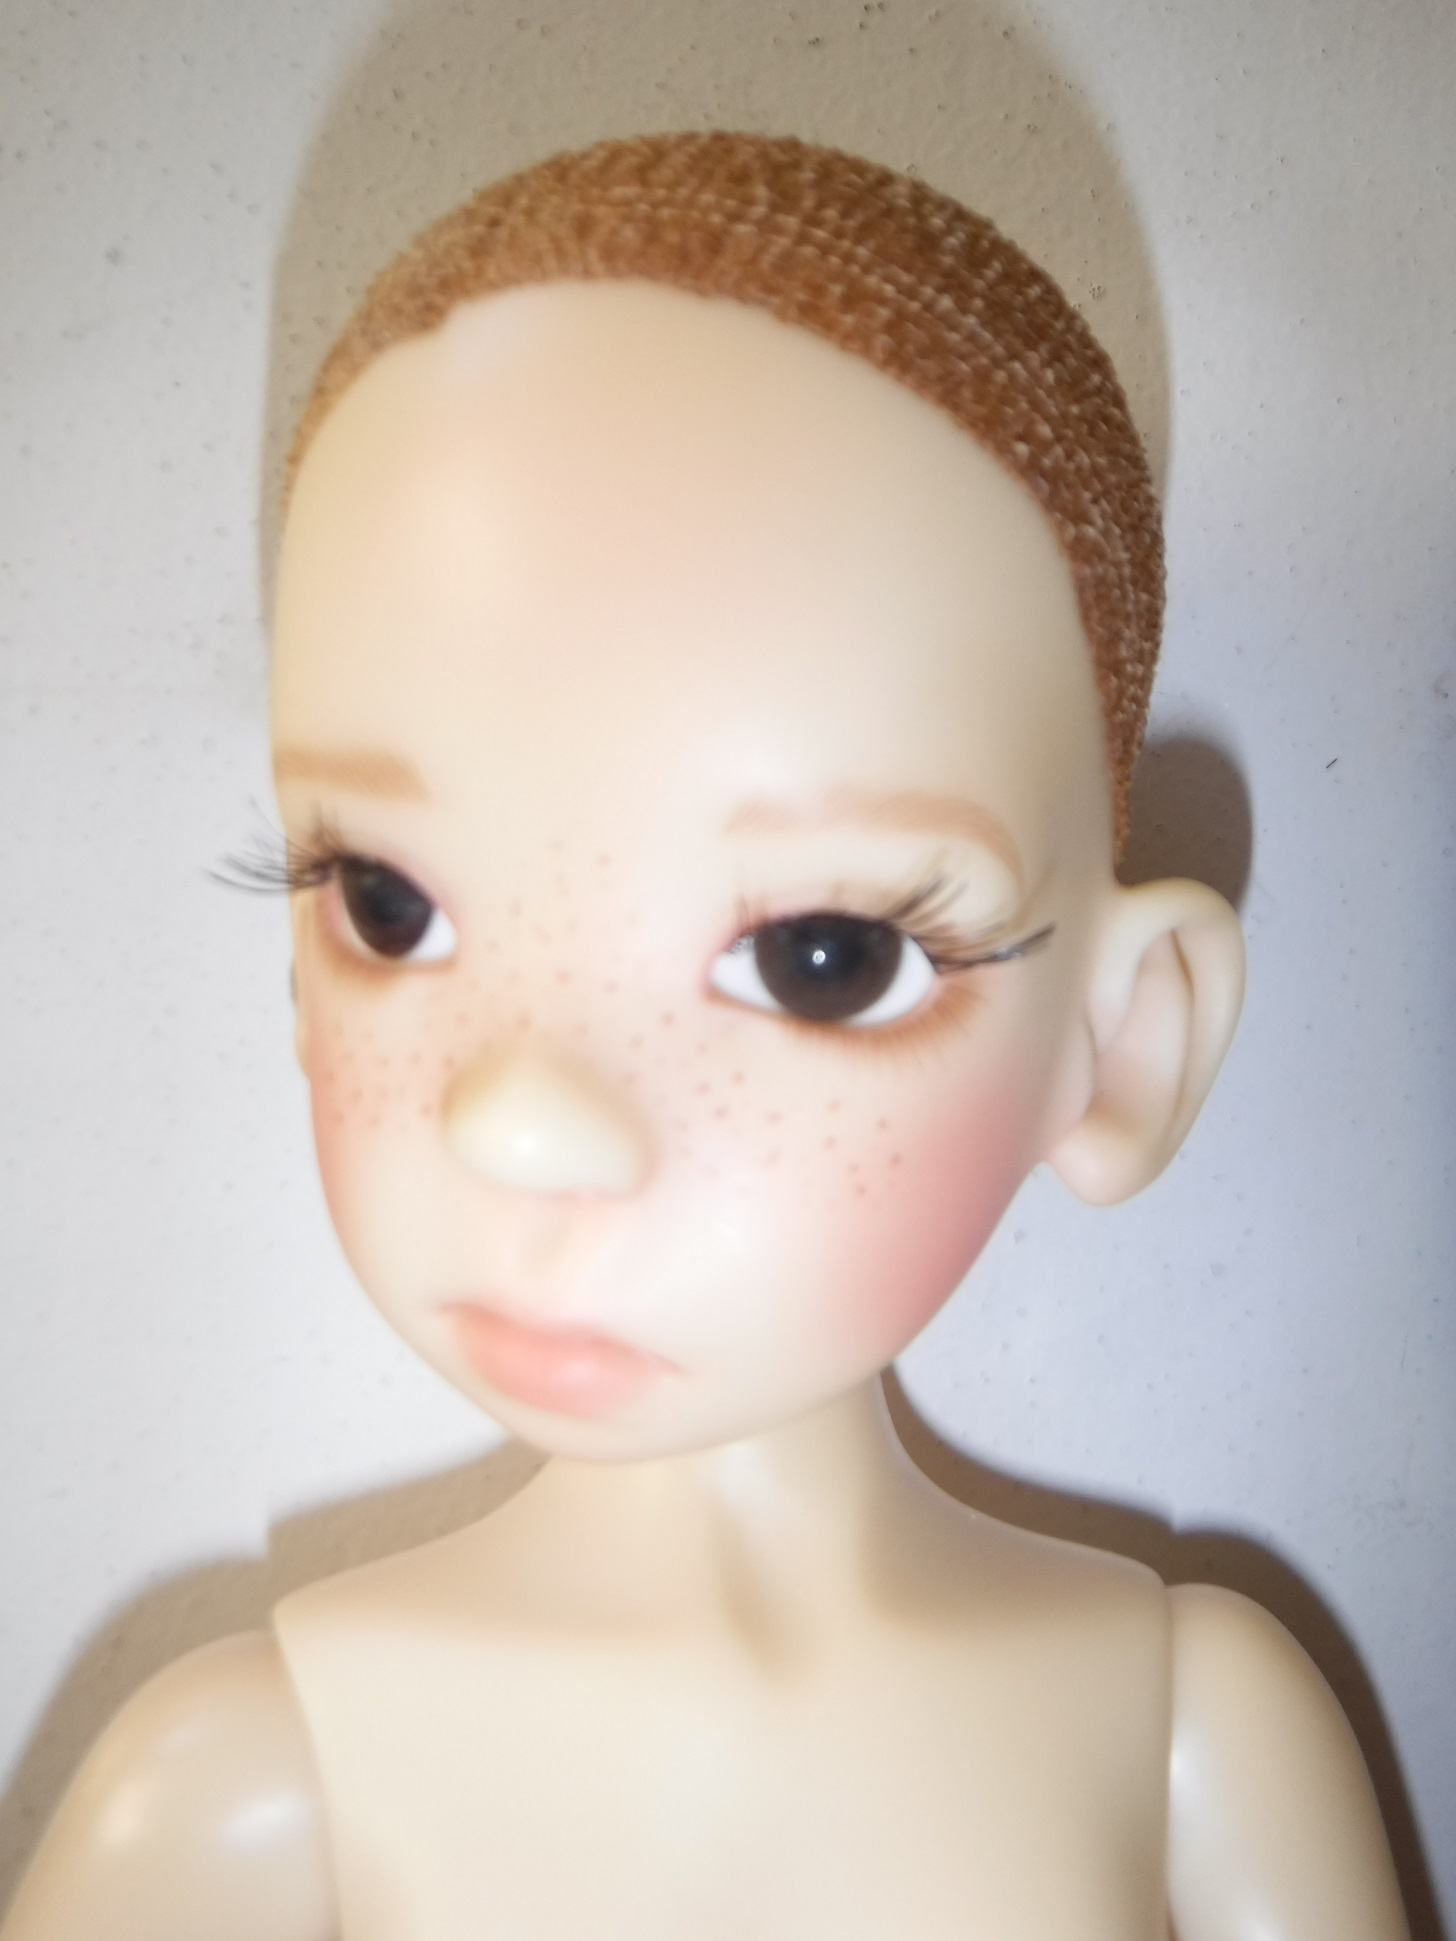 One of my Mom's Ball Jointed Dolls, Fair Skinned Nelly